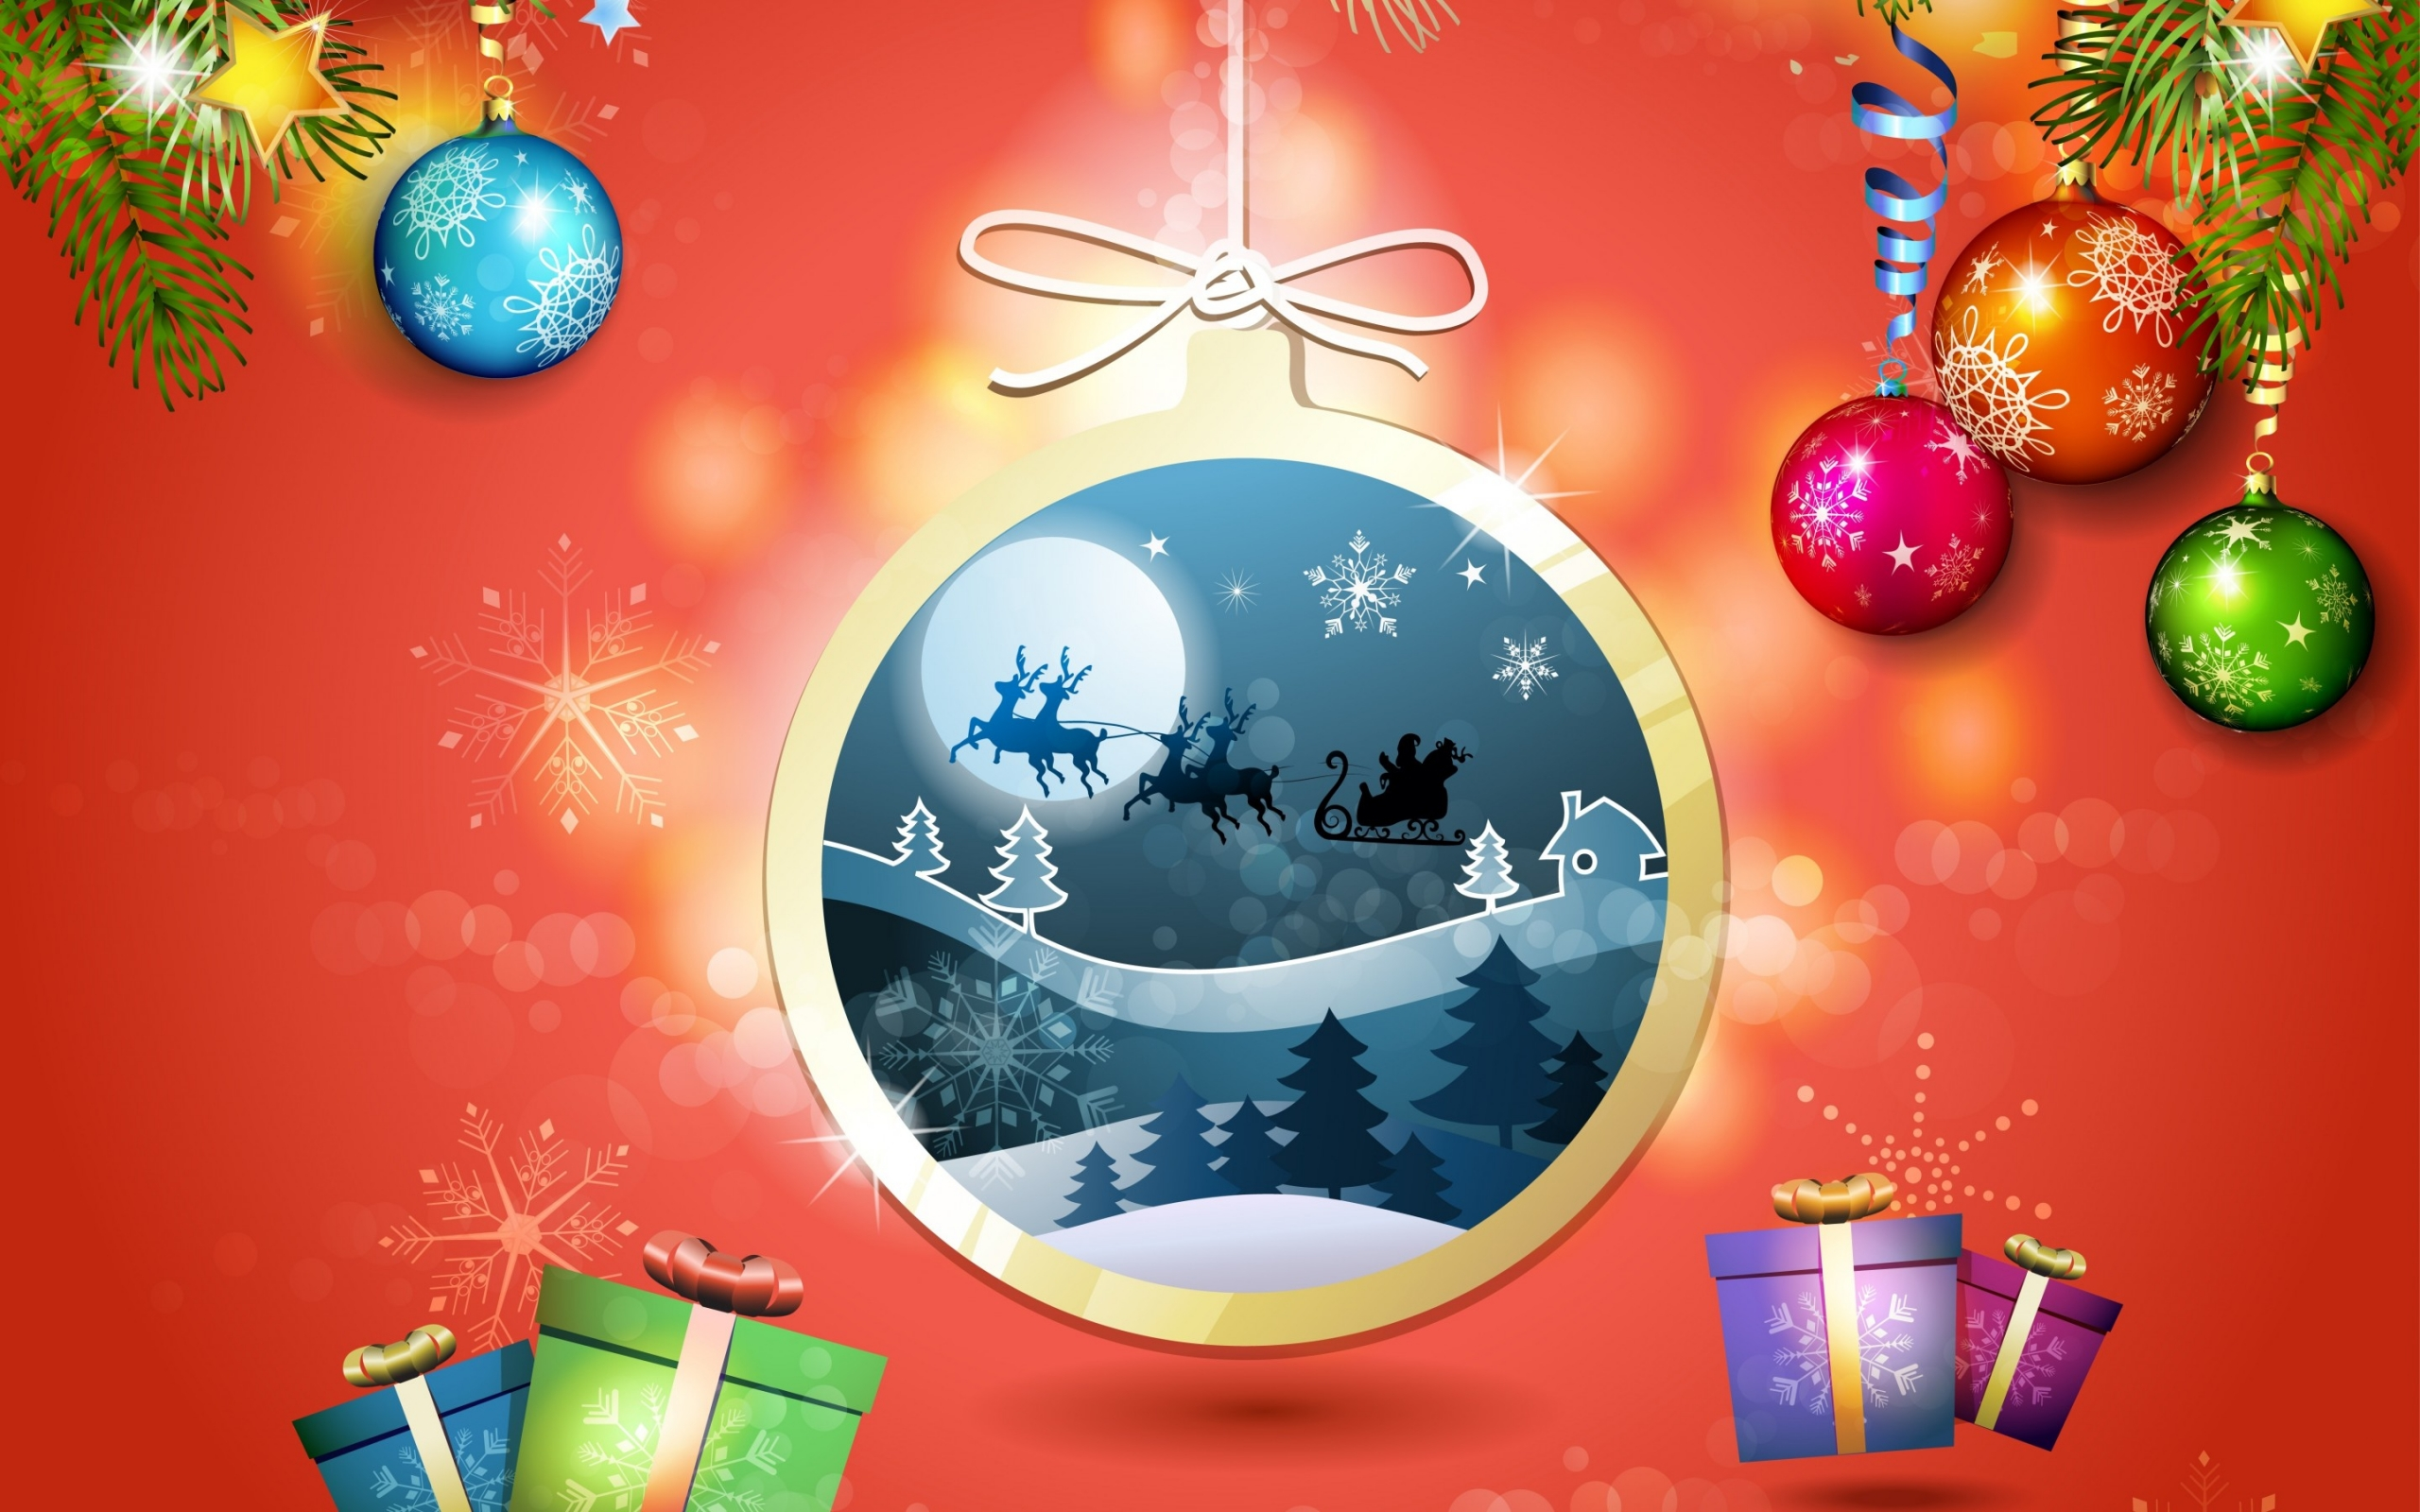 34079 download wallpaper Background, Christmas, Xmas screensavers and pictures for free